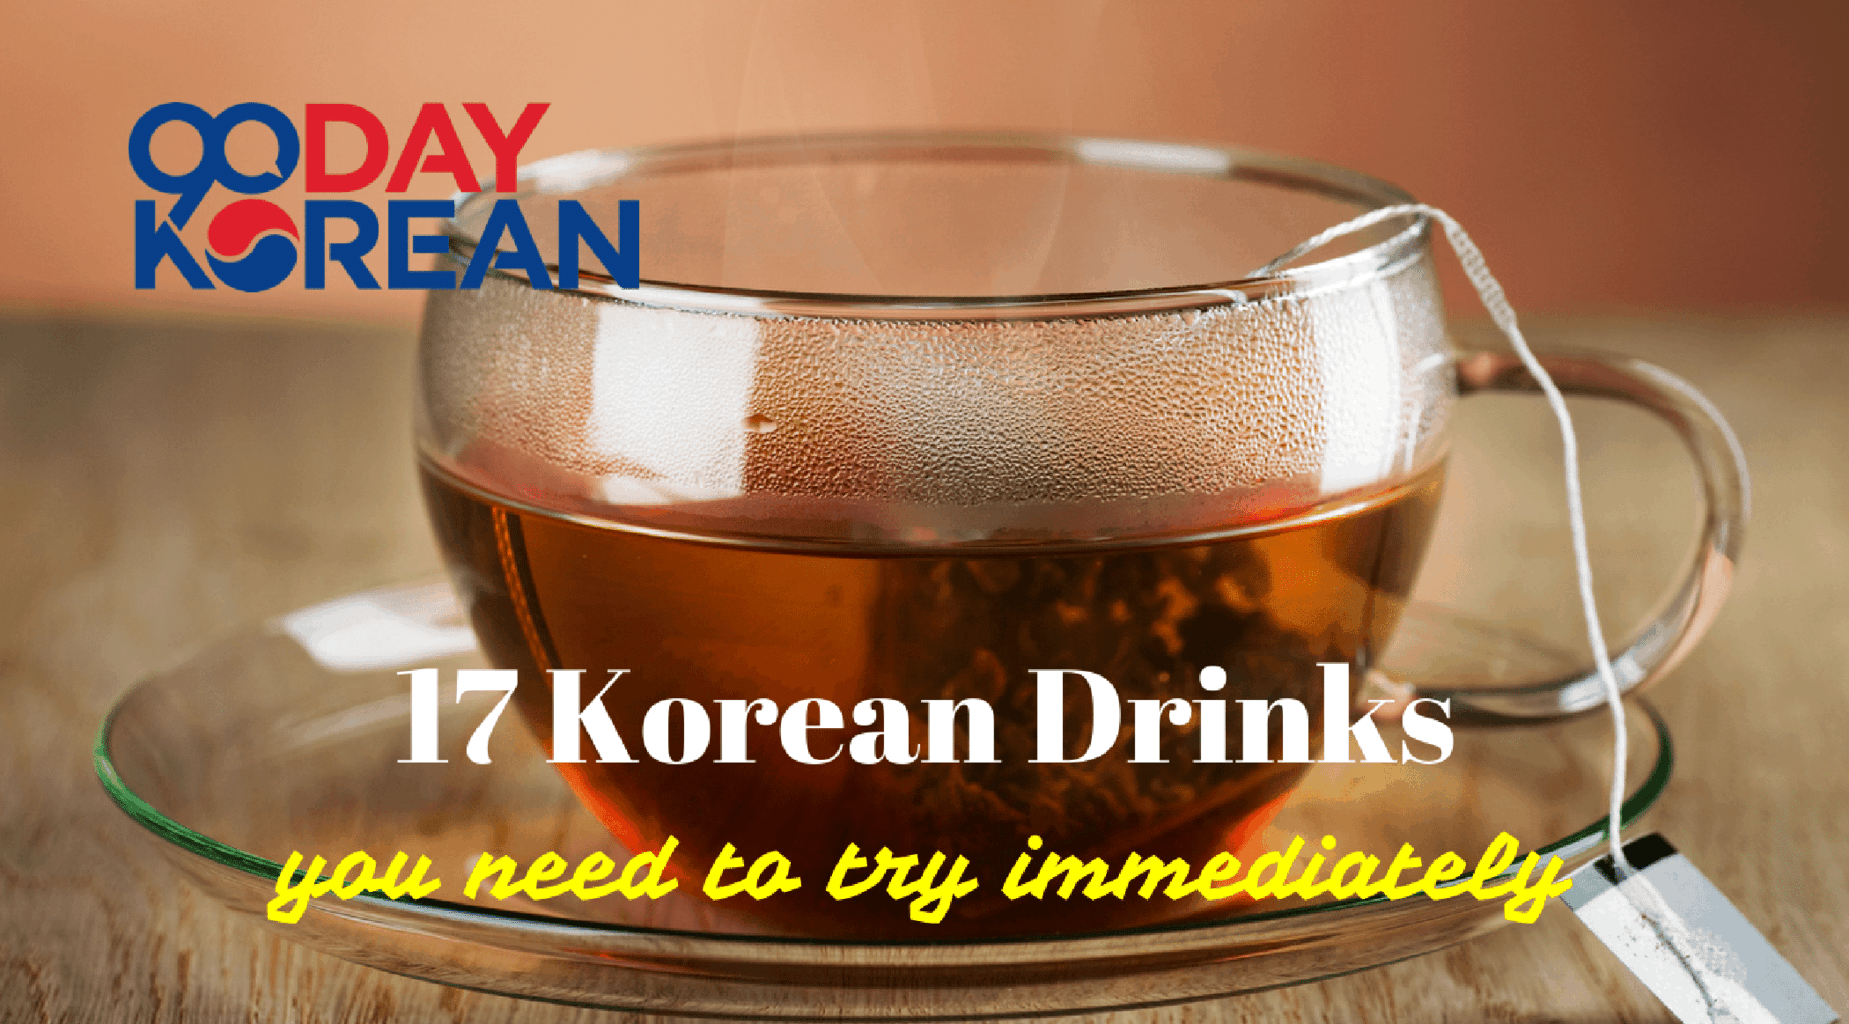 Korean drinks